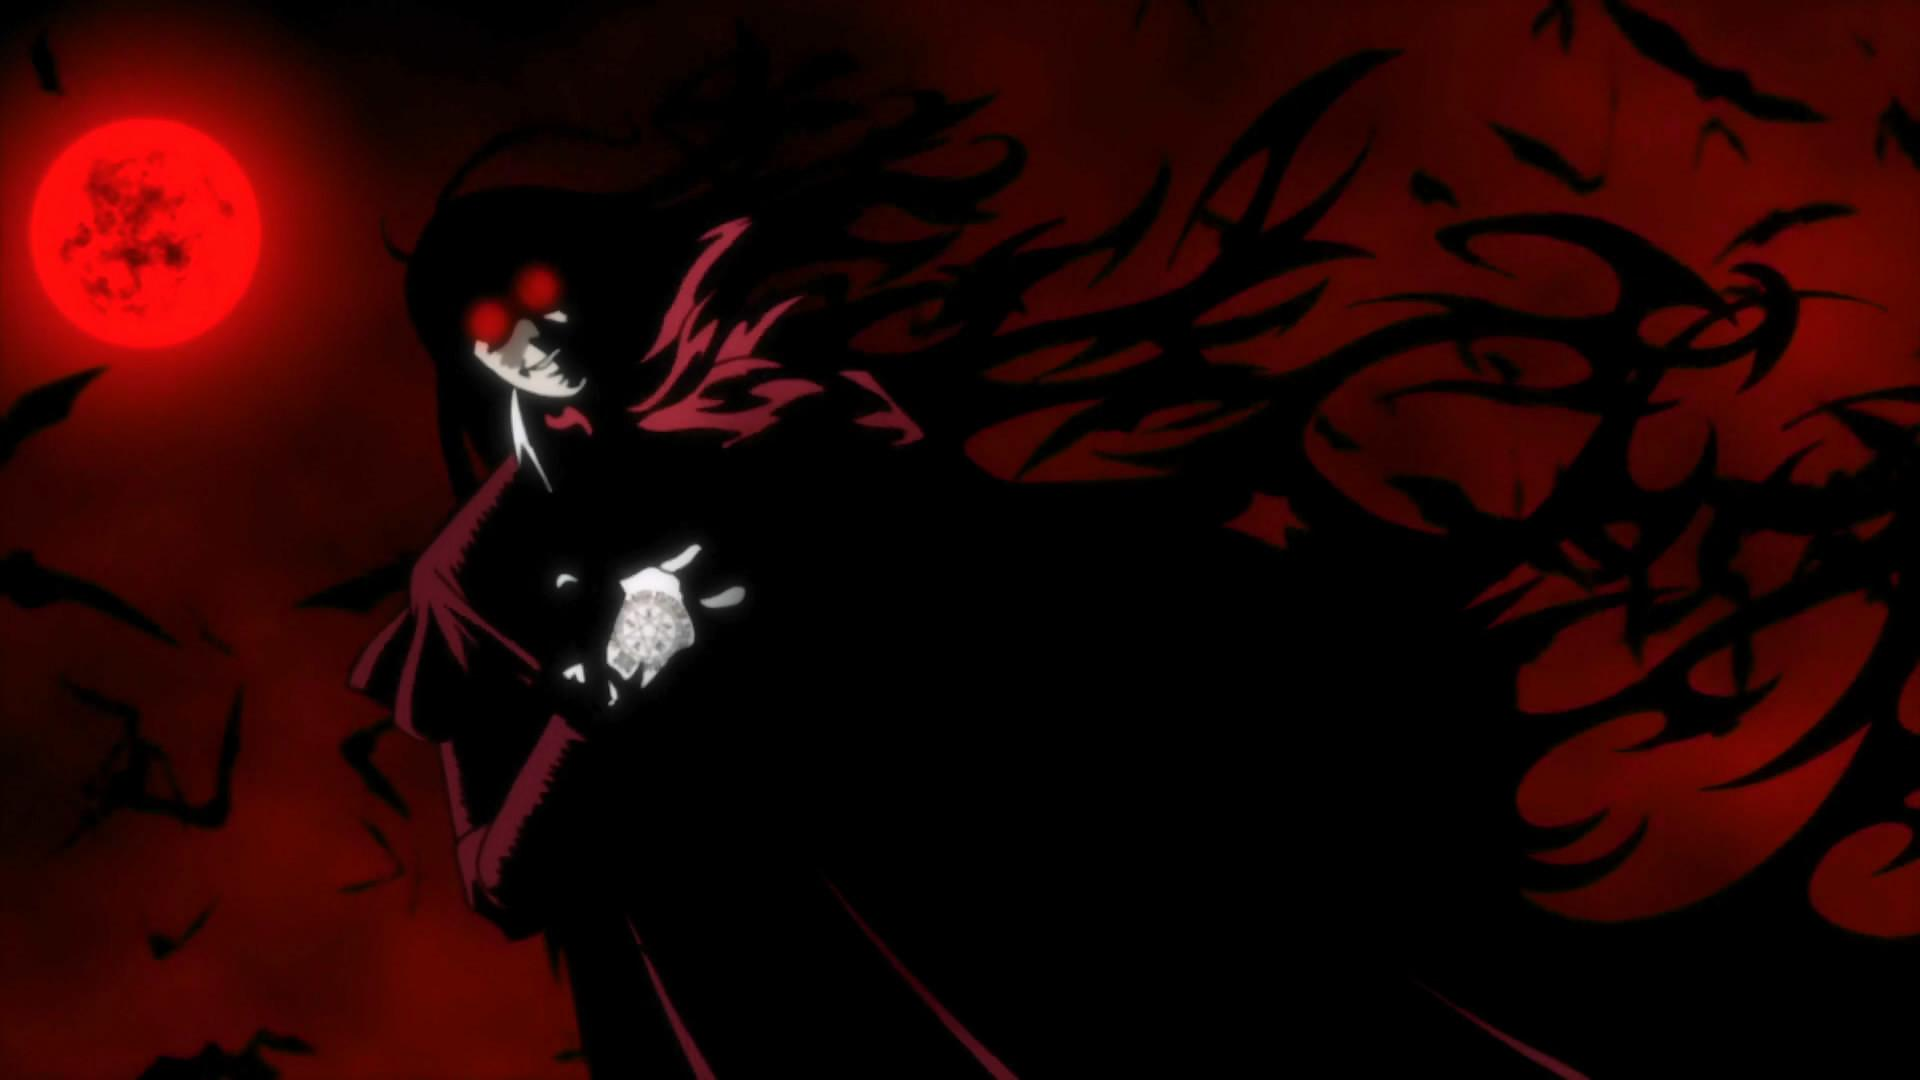 Wallpaper Alucard Dan Miya Download Wallpaper HD For PC